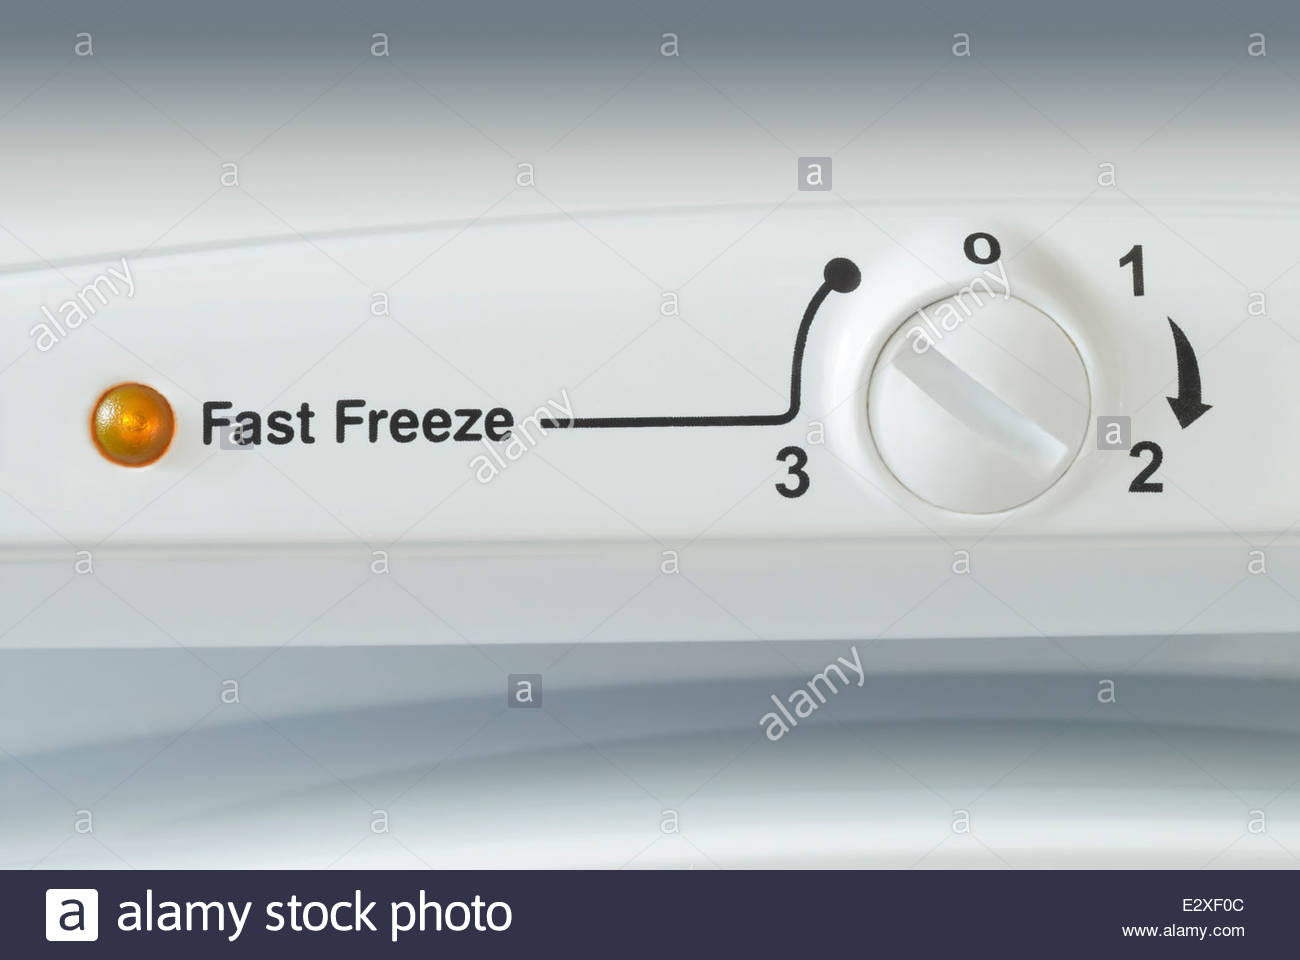 Close-up of a temperature control on the front of a domestic freezer - Stock Image